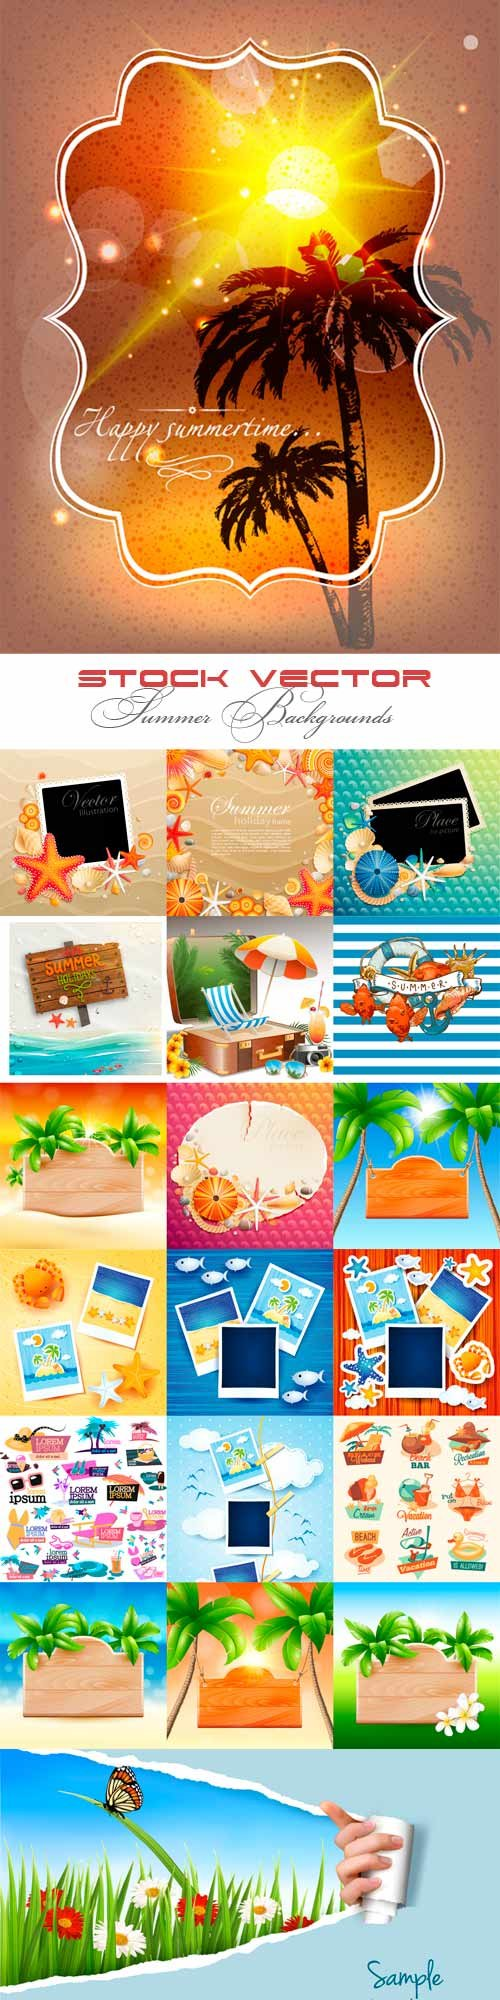 Stock vector summer backgrounds